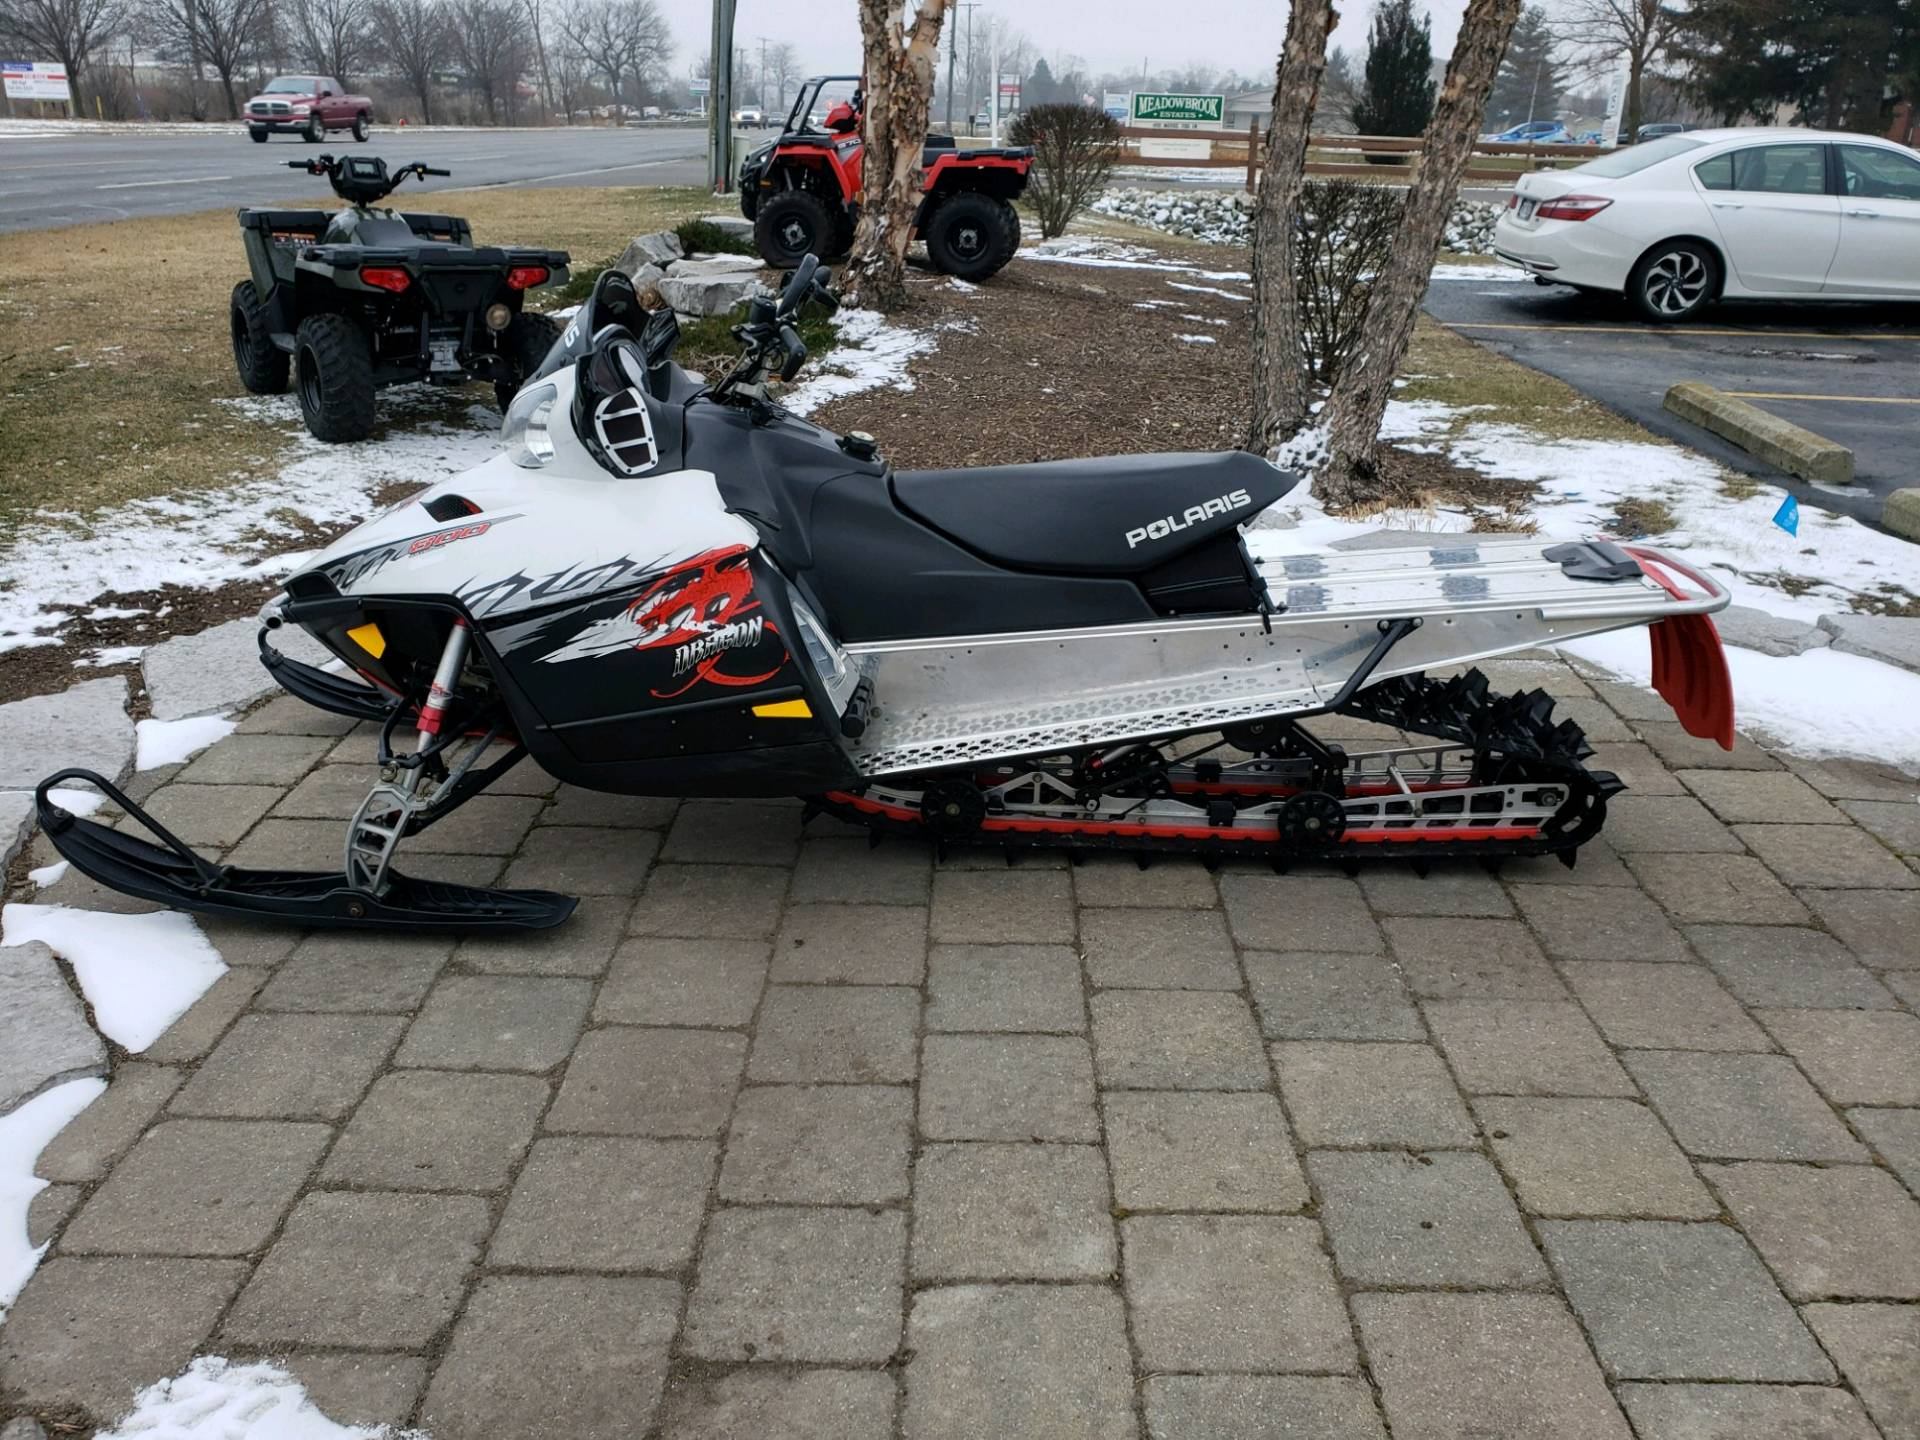 2009 Polaris 800 Dragon RMK 155 4